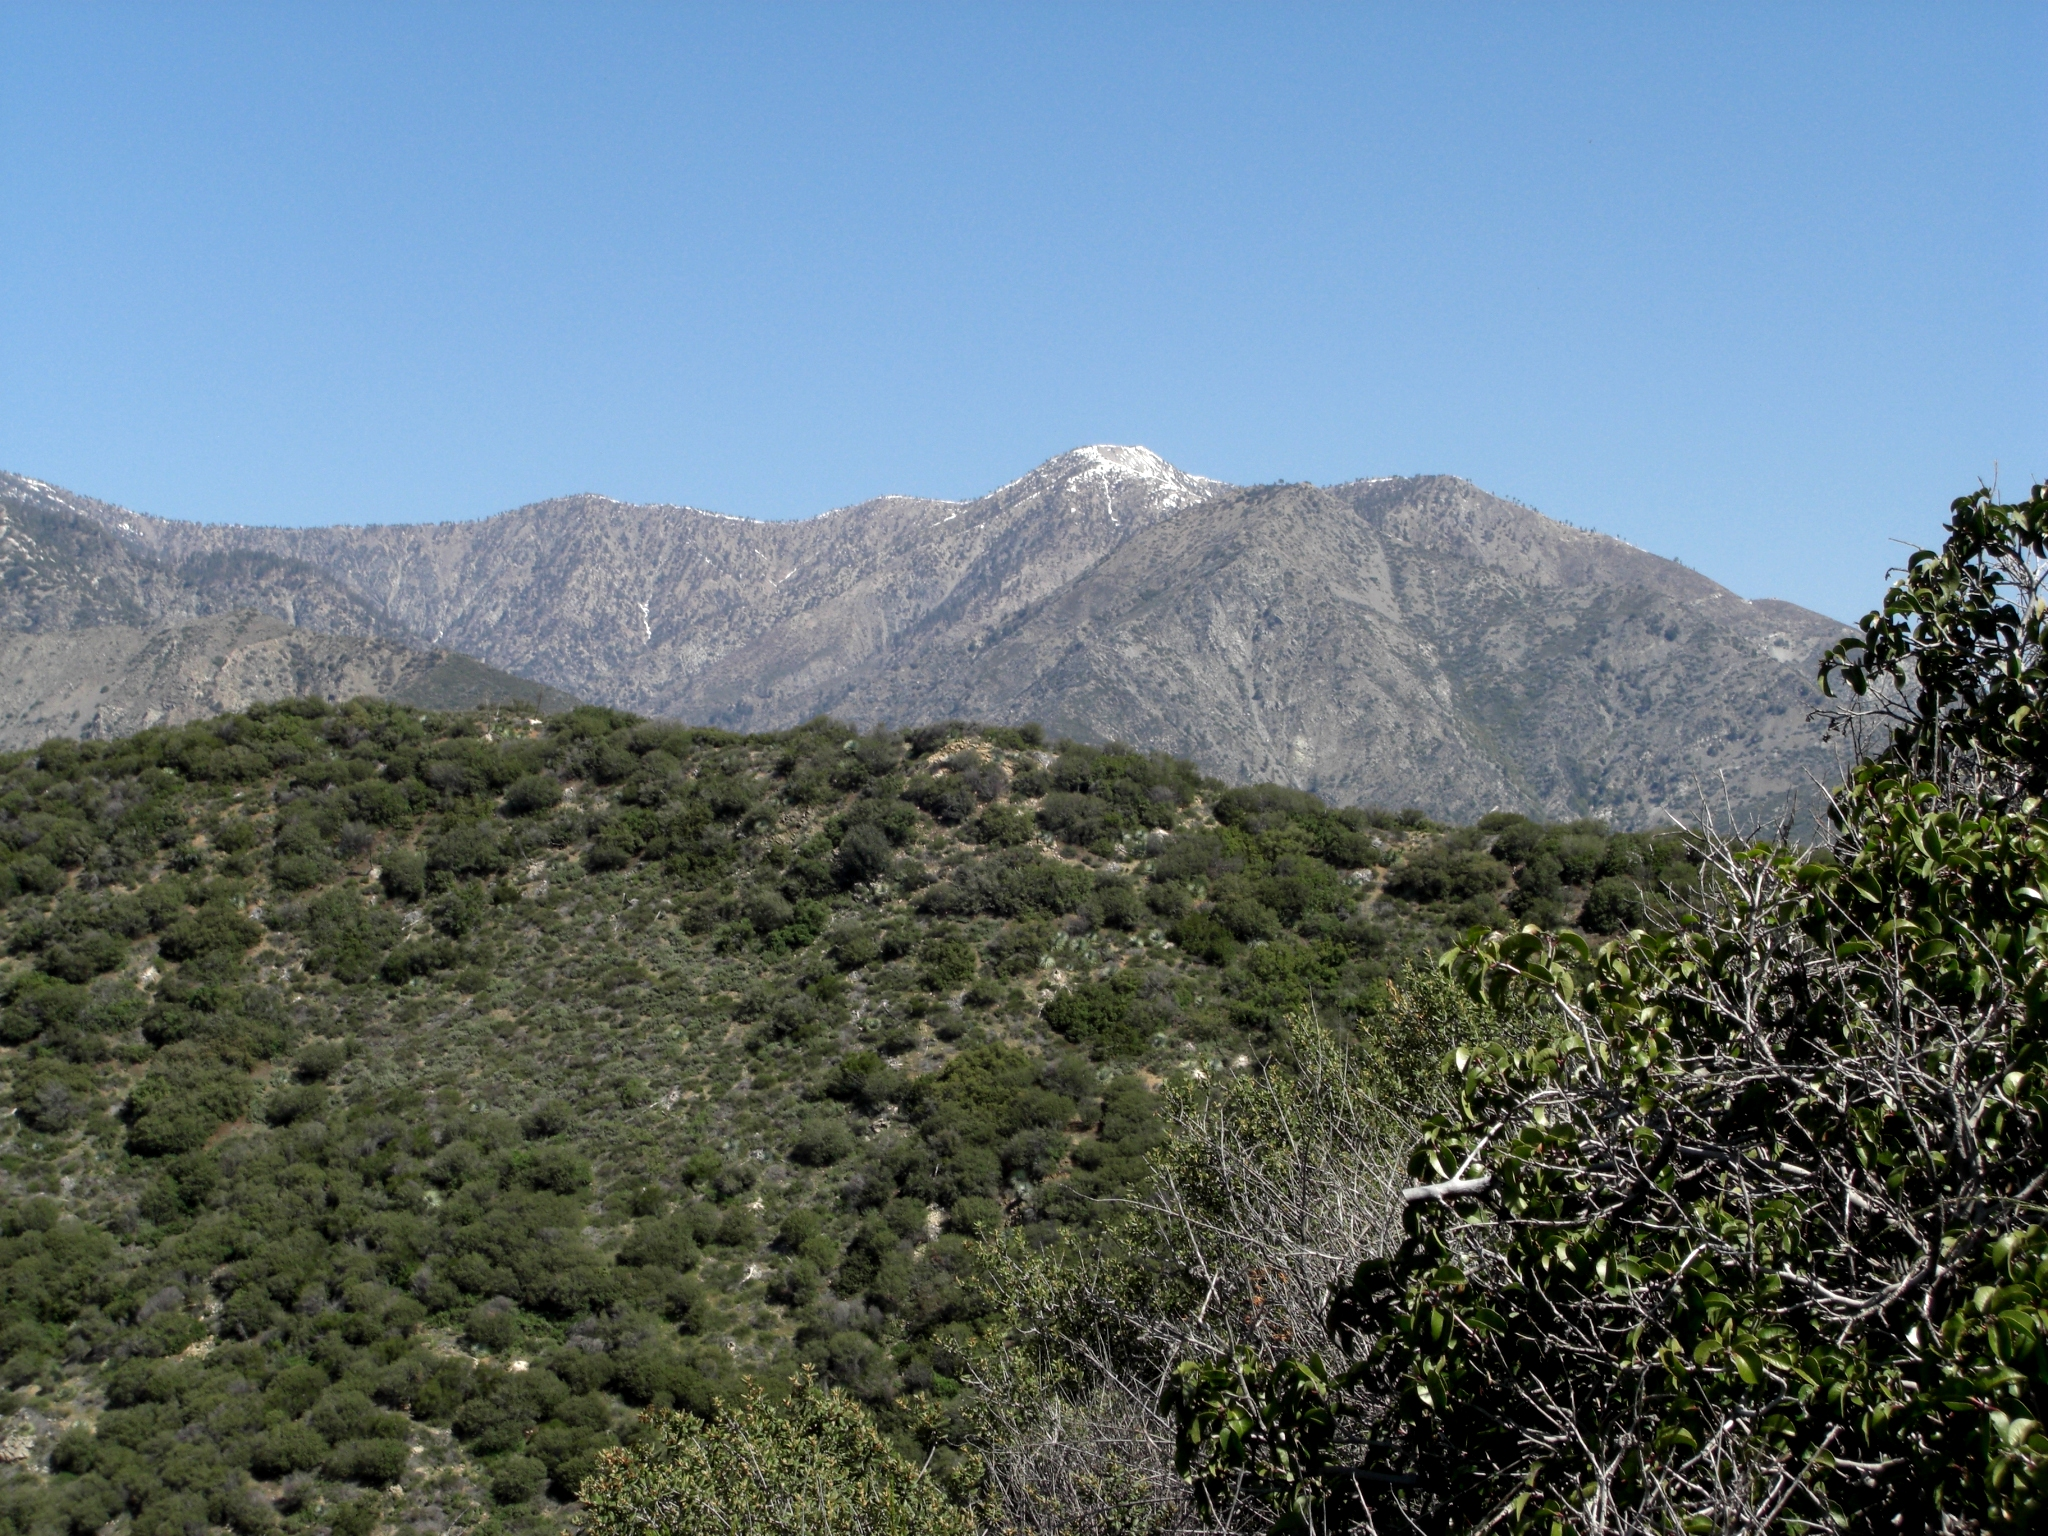 View of Mt. Baden-Powell, which we bagged last year! It's so fun to see peaks we've climbed to from a different perspective.